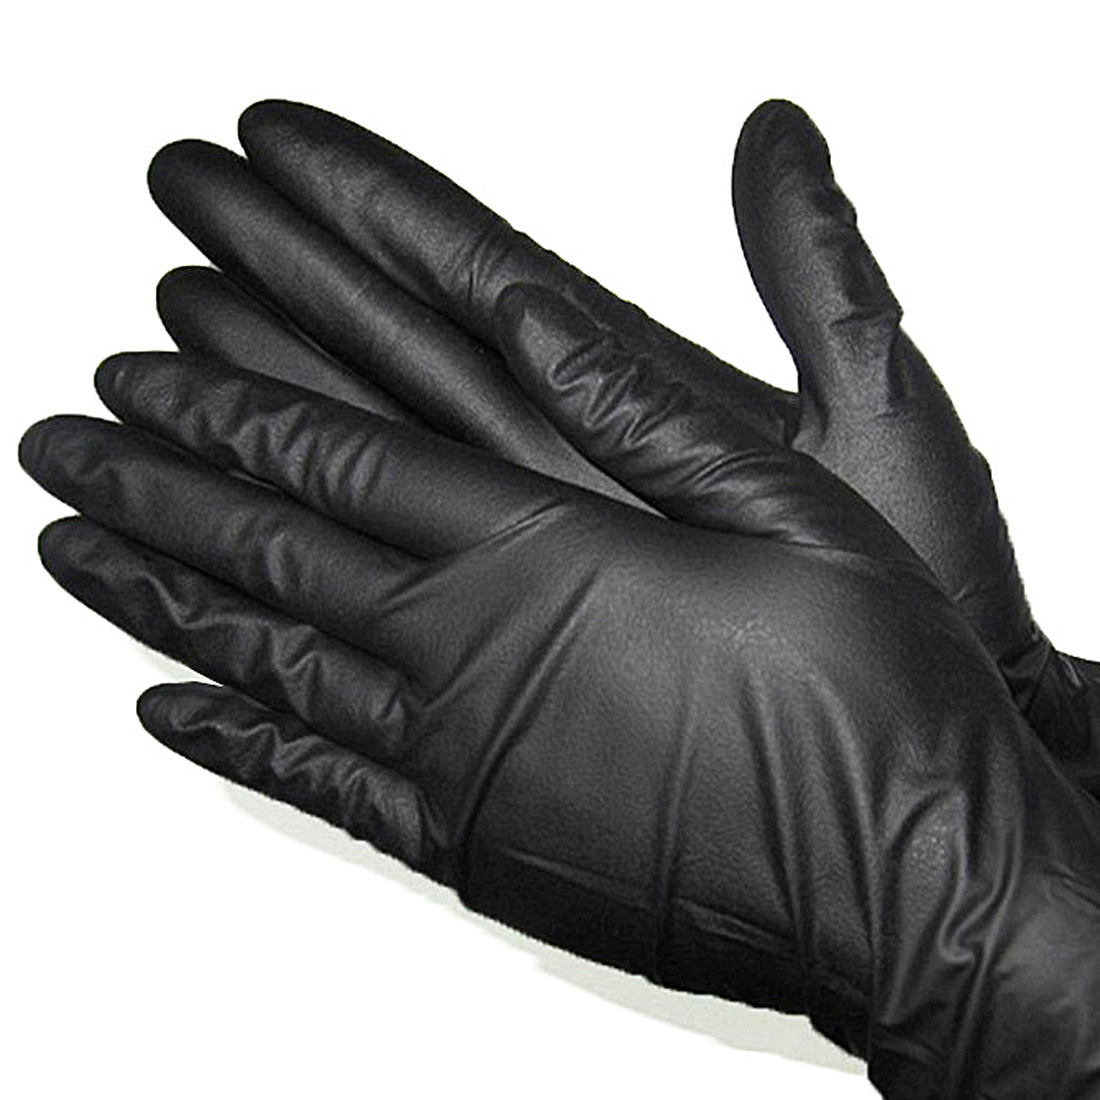 100 Pair Nitrile Latex Tattoo Mechanic Gloves Bodyguard Powder